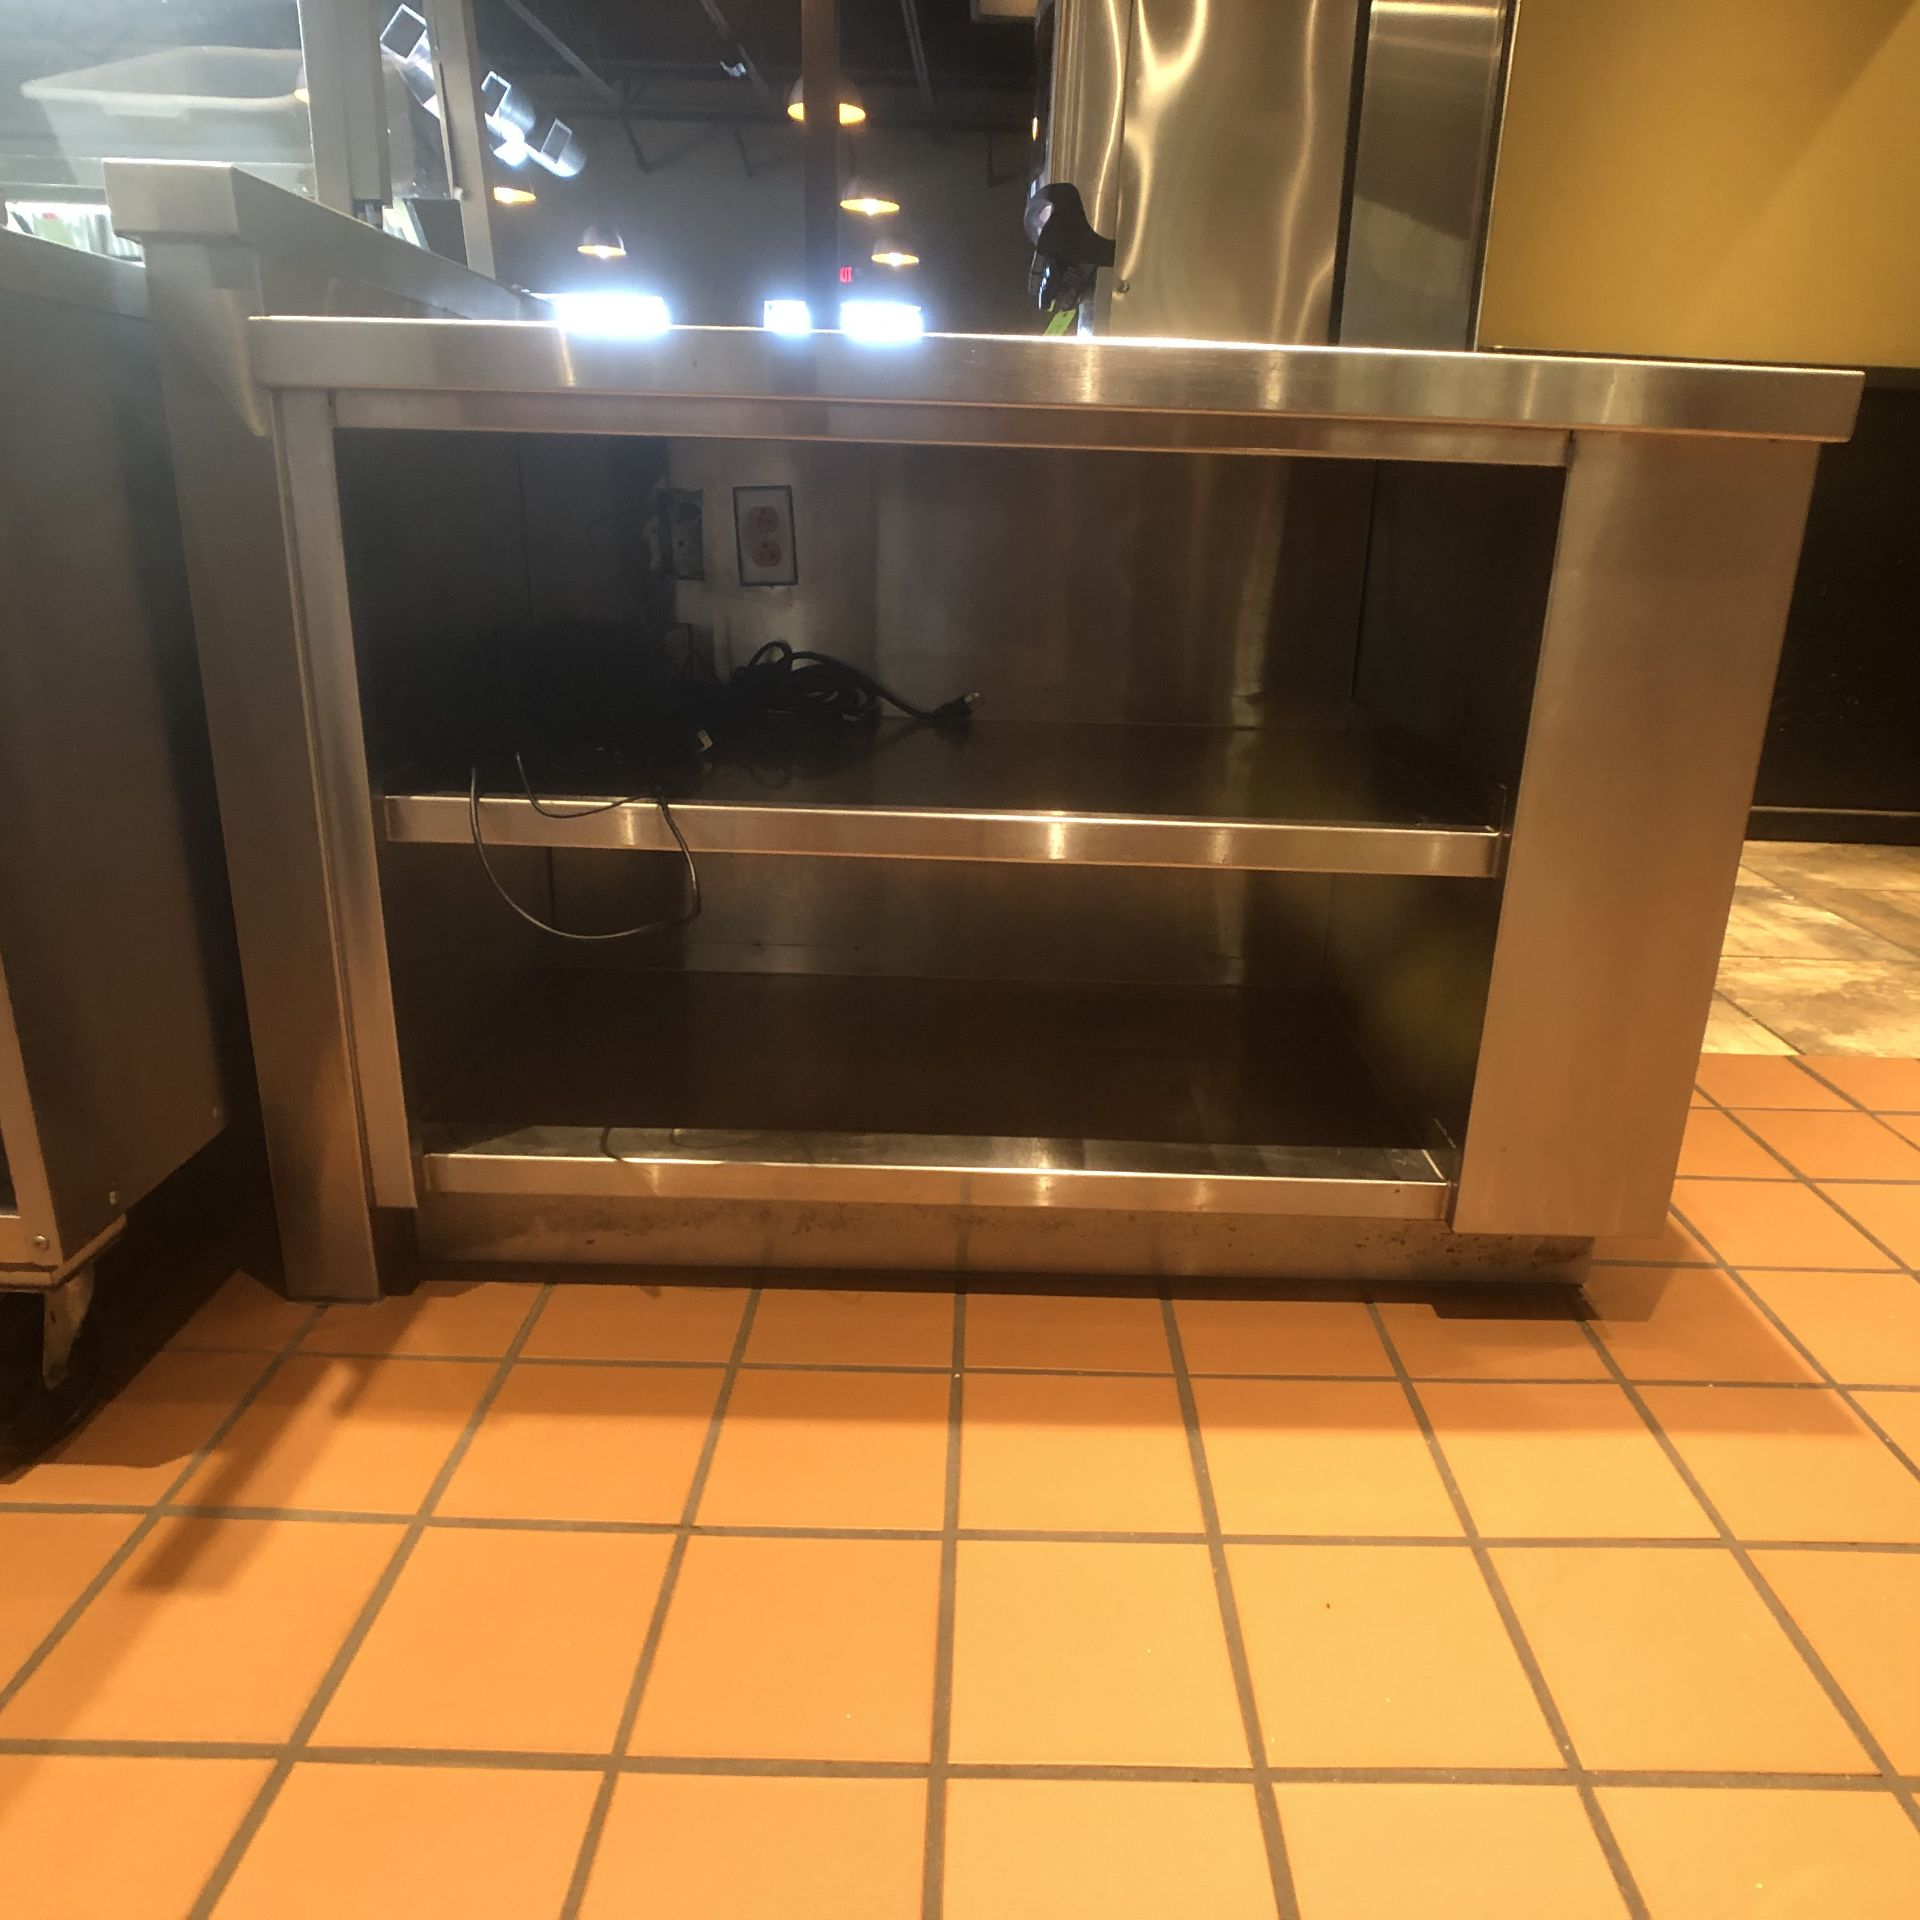 """Food Service Equipment Approx. 4' L x 2'8"""" W S/S Countertop with S/S Shelves, 120/208 V - Image 3 of 5"""